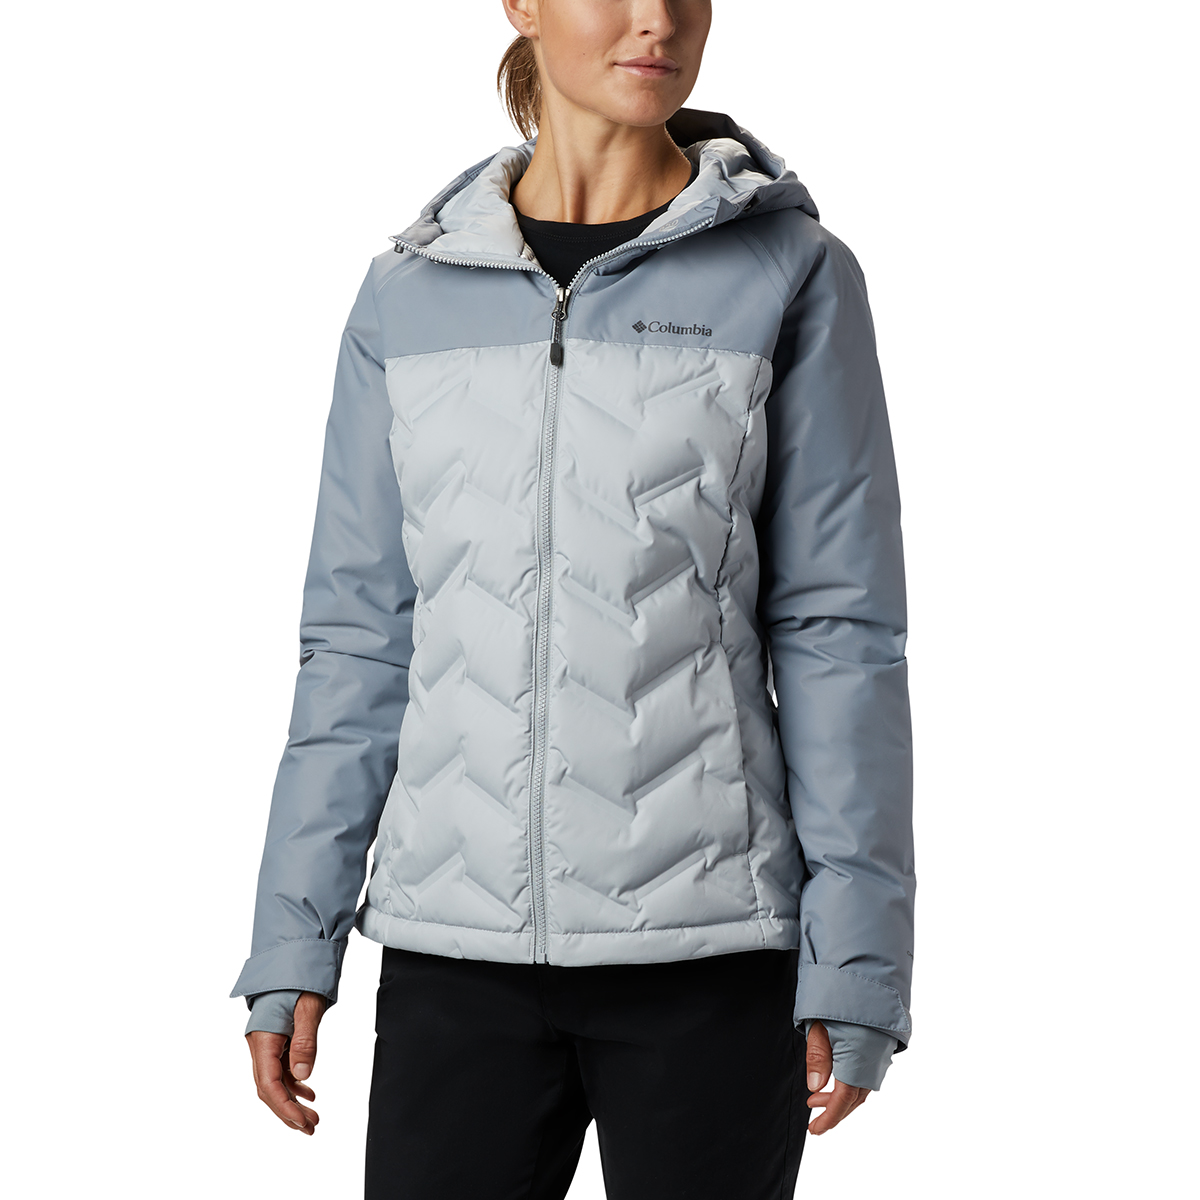 Columbia Women's Grand Trek Down Jacket - White, M